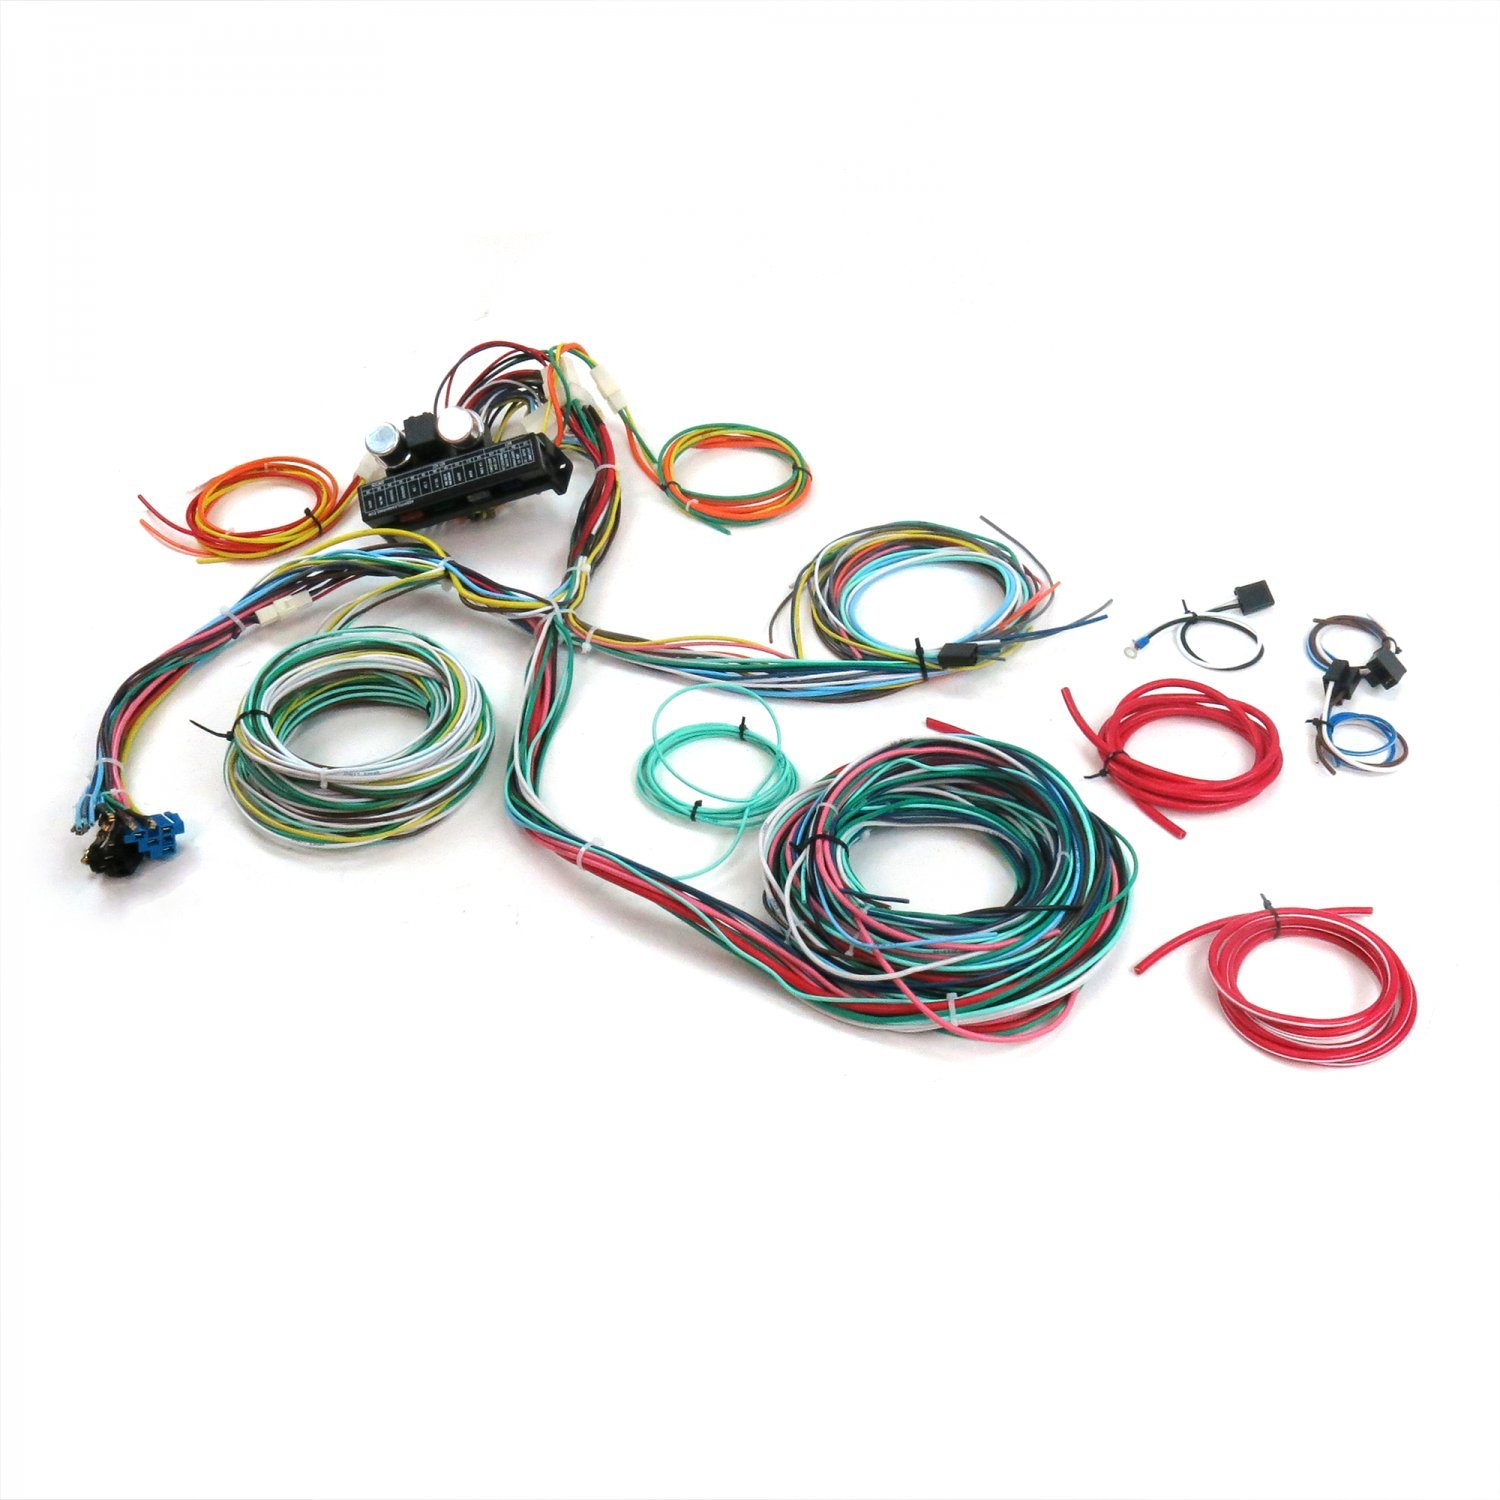 Keep It Clean Wiring Accessories KICA33002 Ultimate 15 Fuse ... A Wiring Harness For Ford on